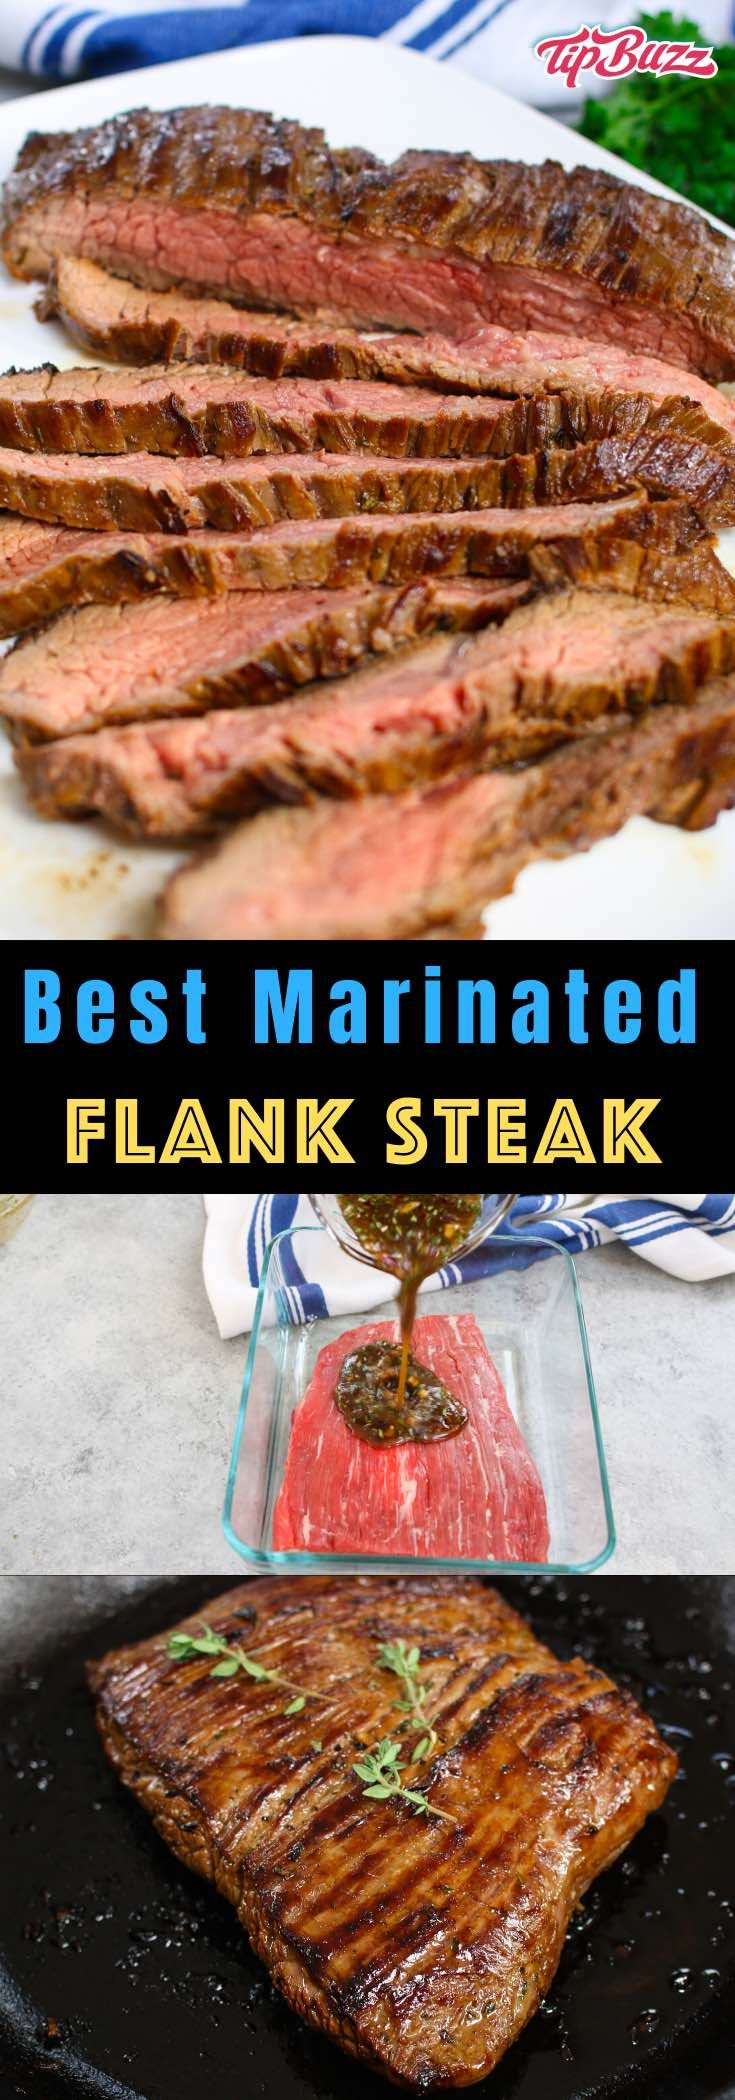 Best Flank Steak Marinade {So Flavorful and Super Easy} - TipBuzz